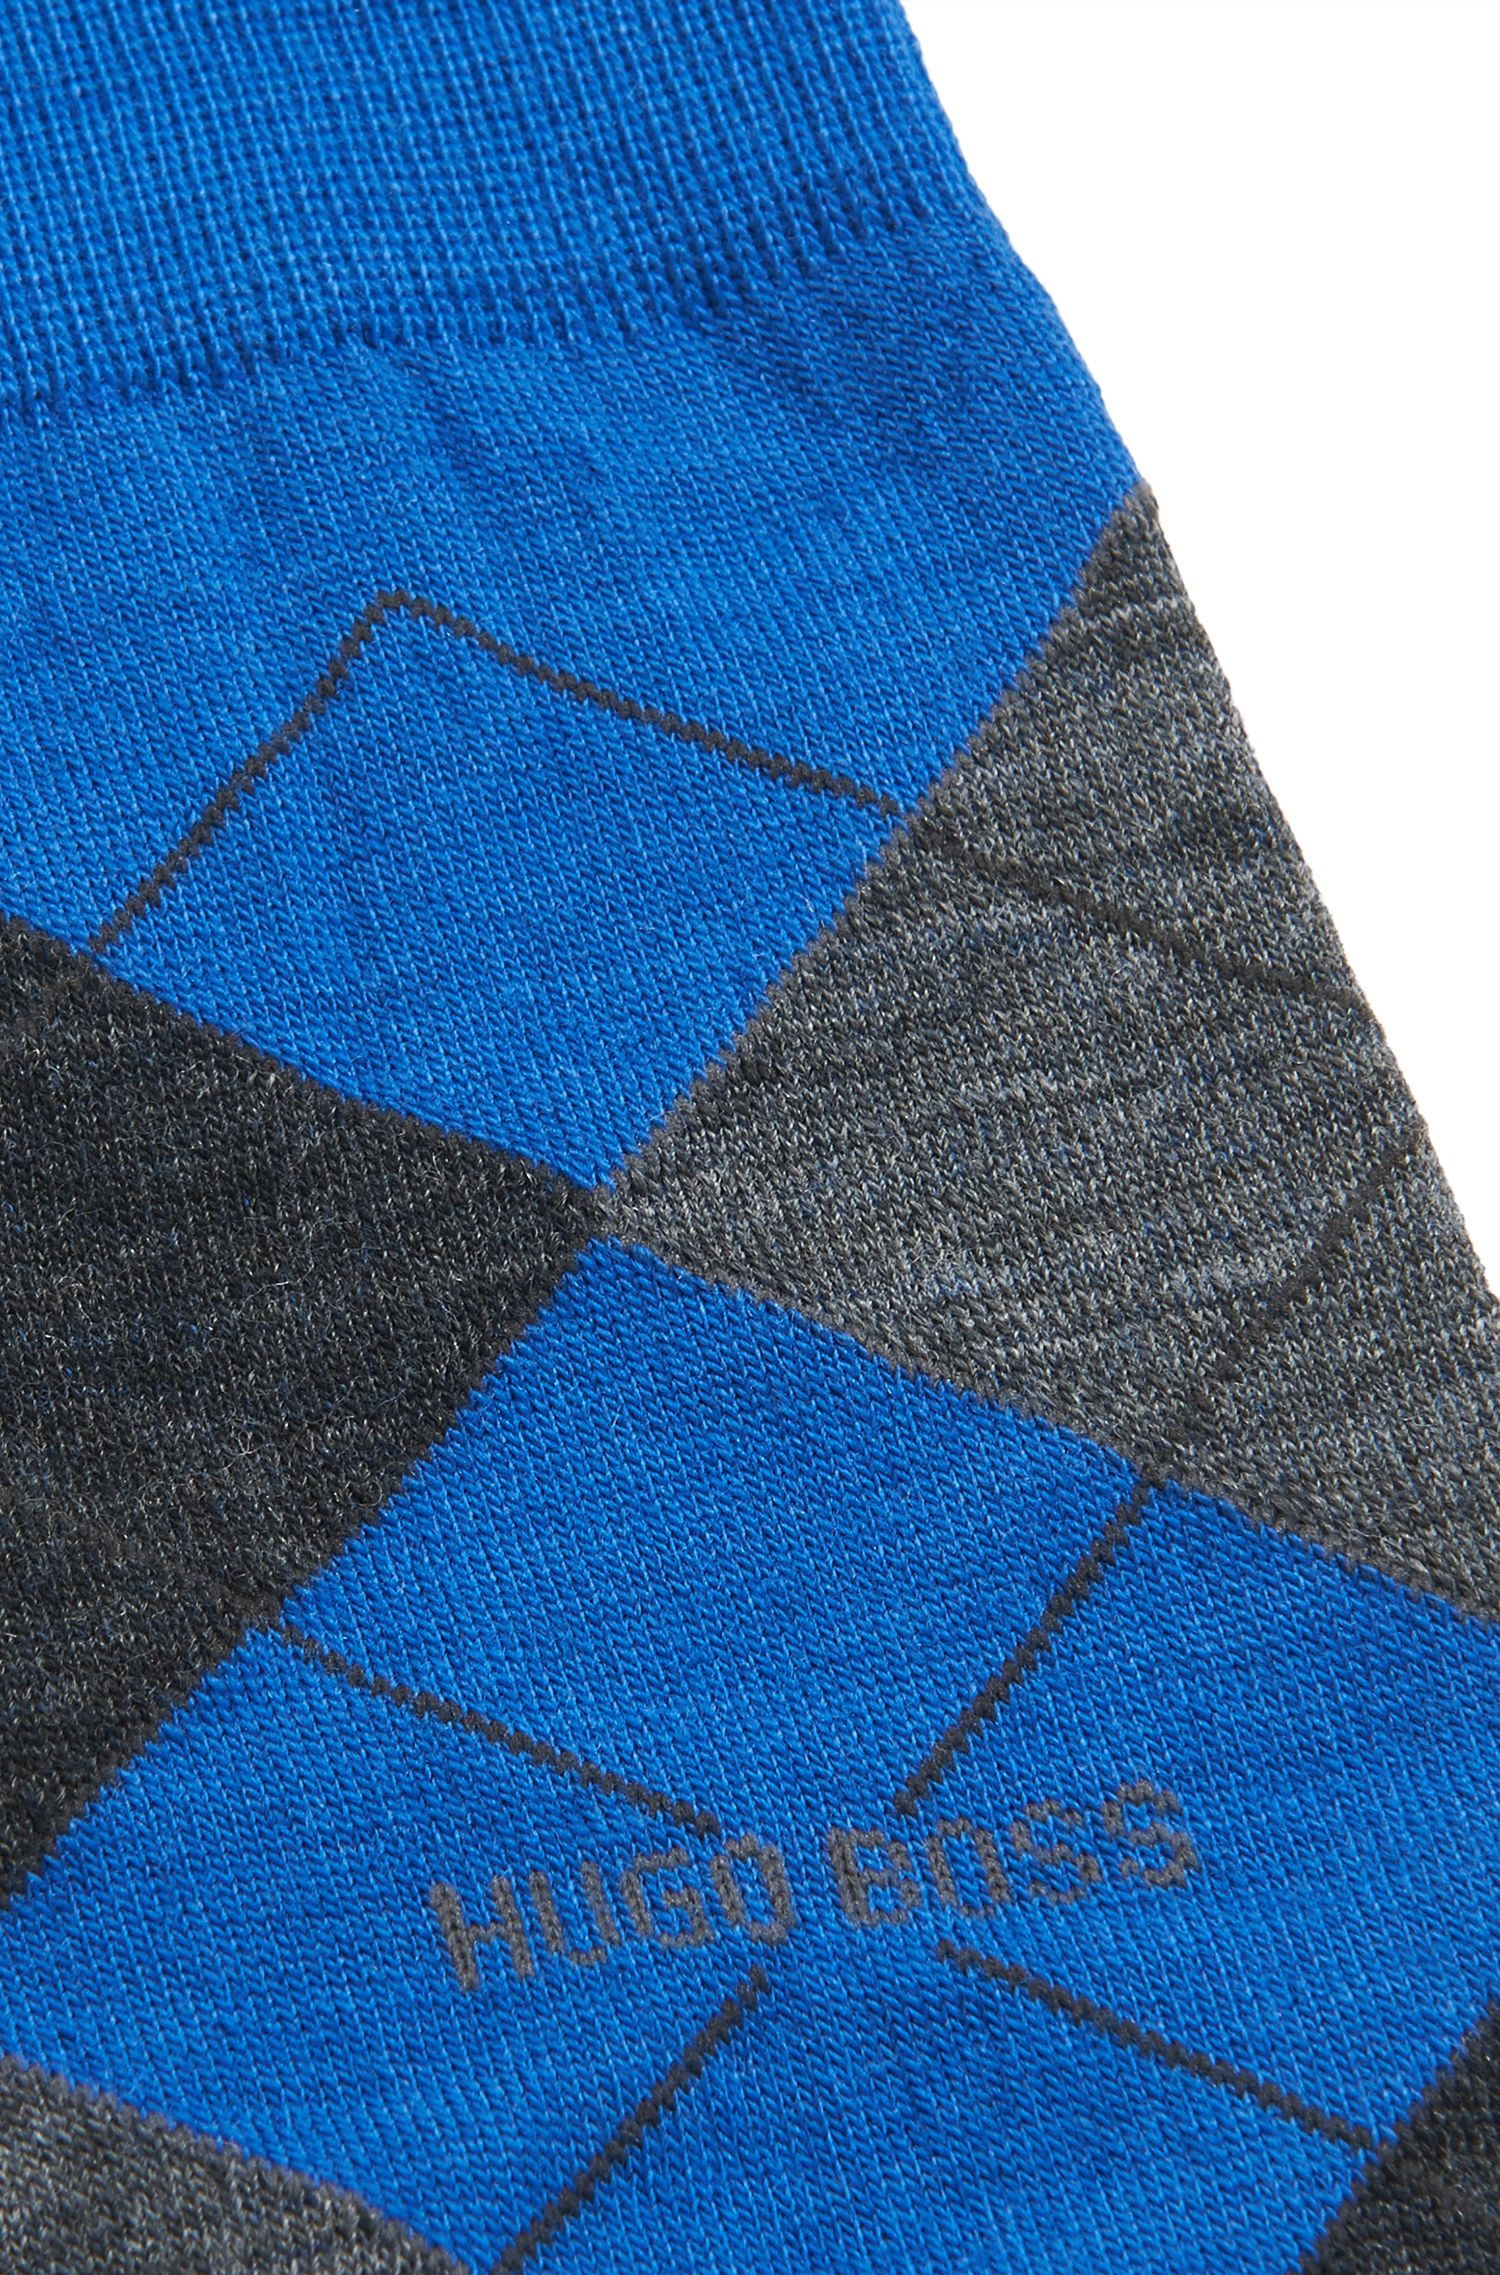 Argyle Stretch Wool Socks | John RS Argyle US